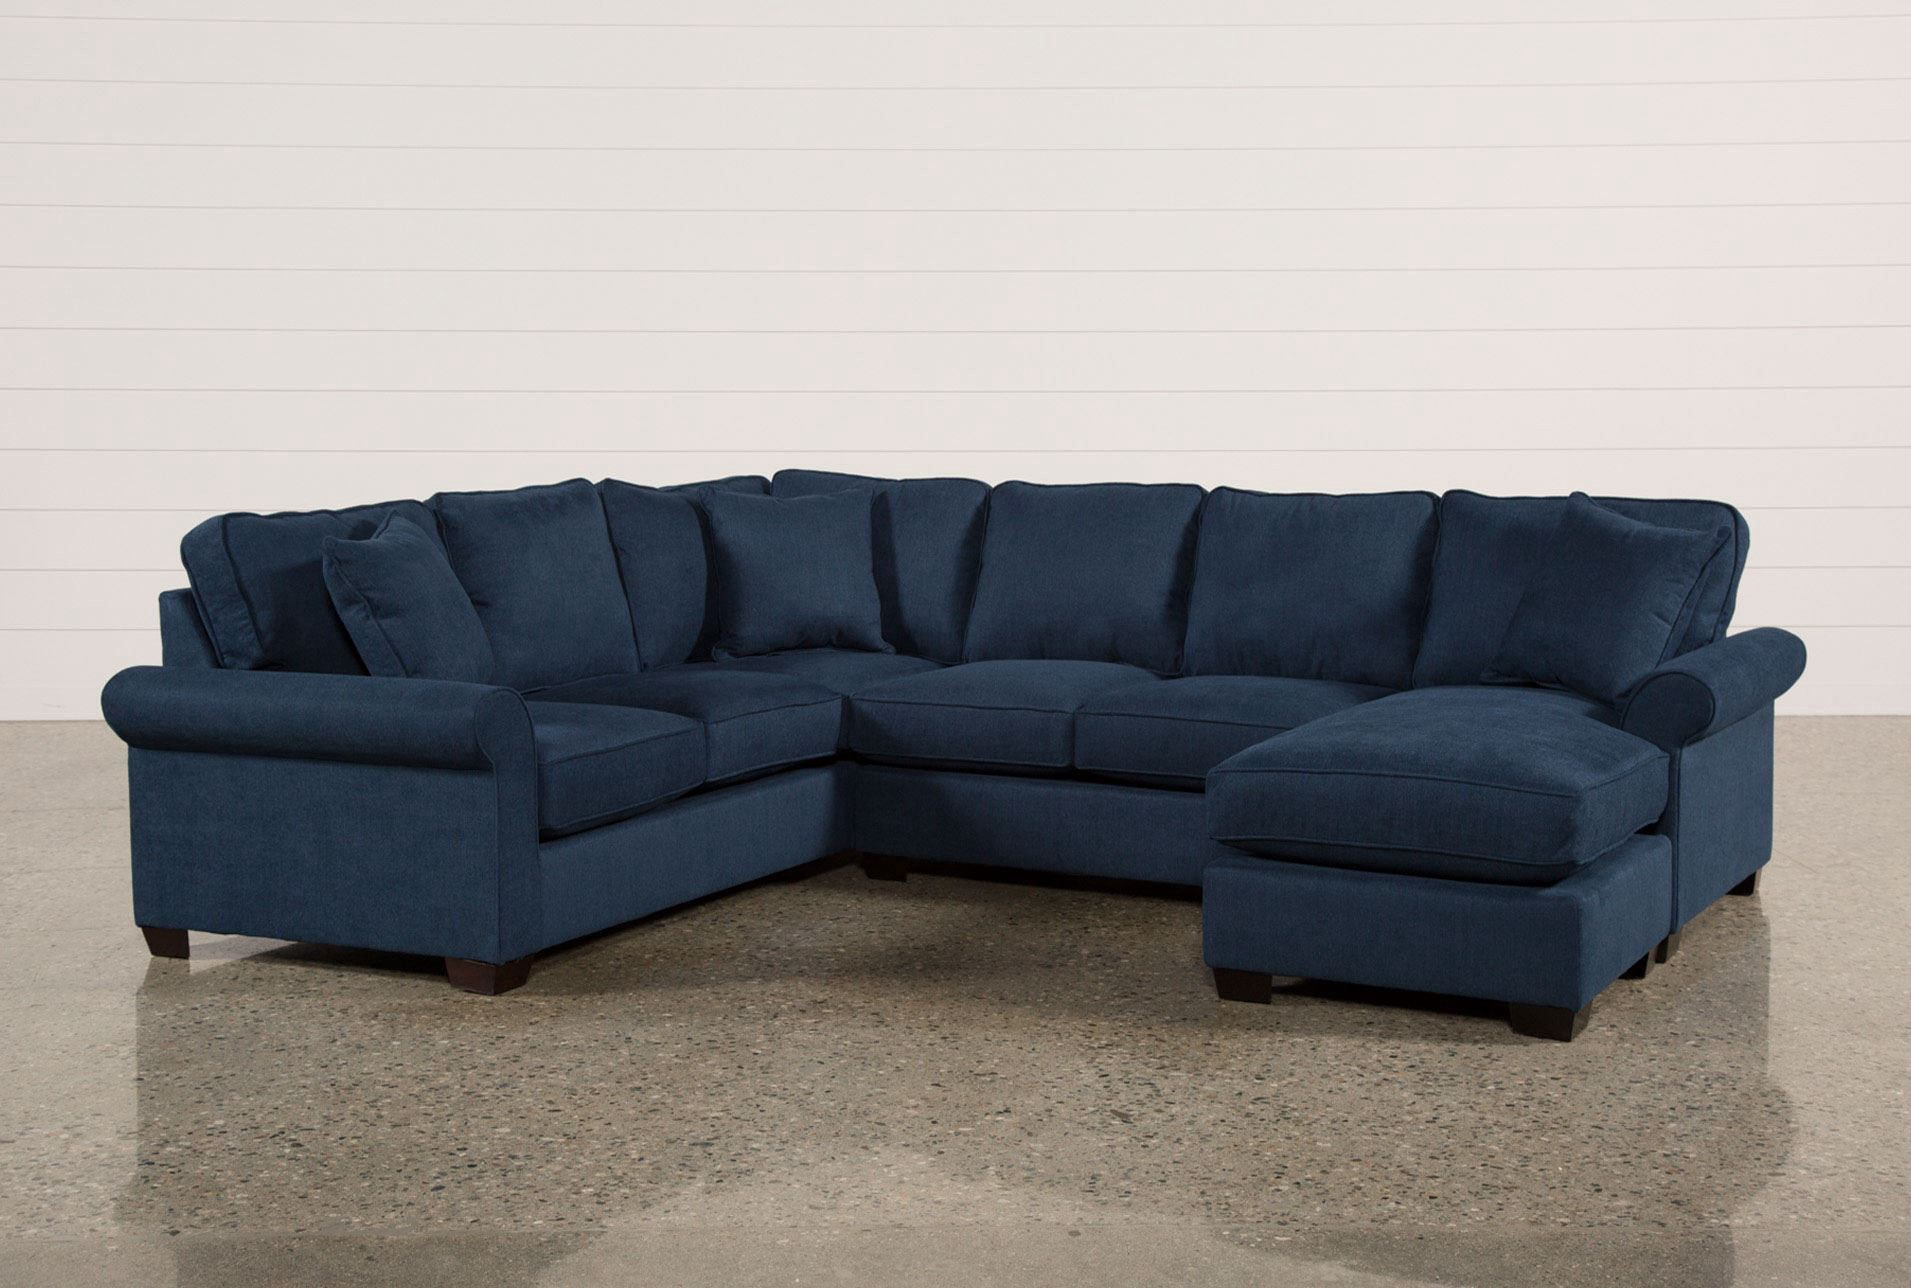 Couch Better Furniture Choice Than Sofa